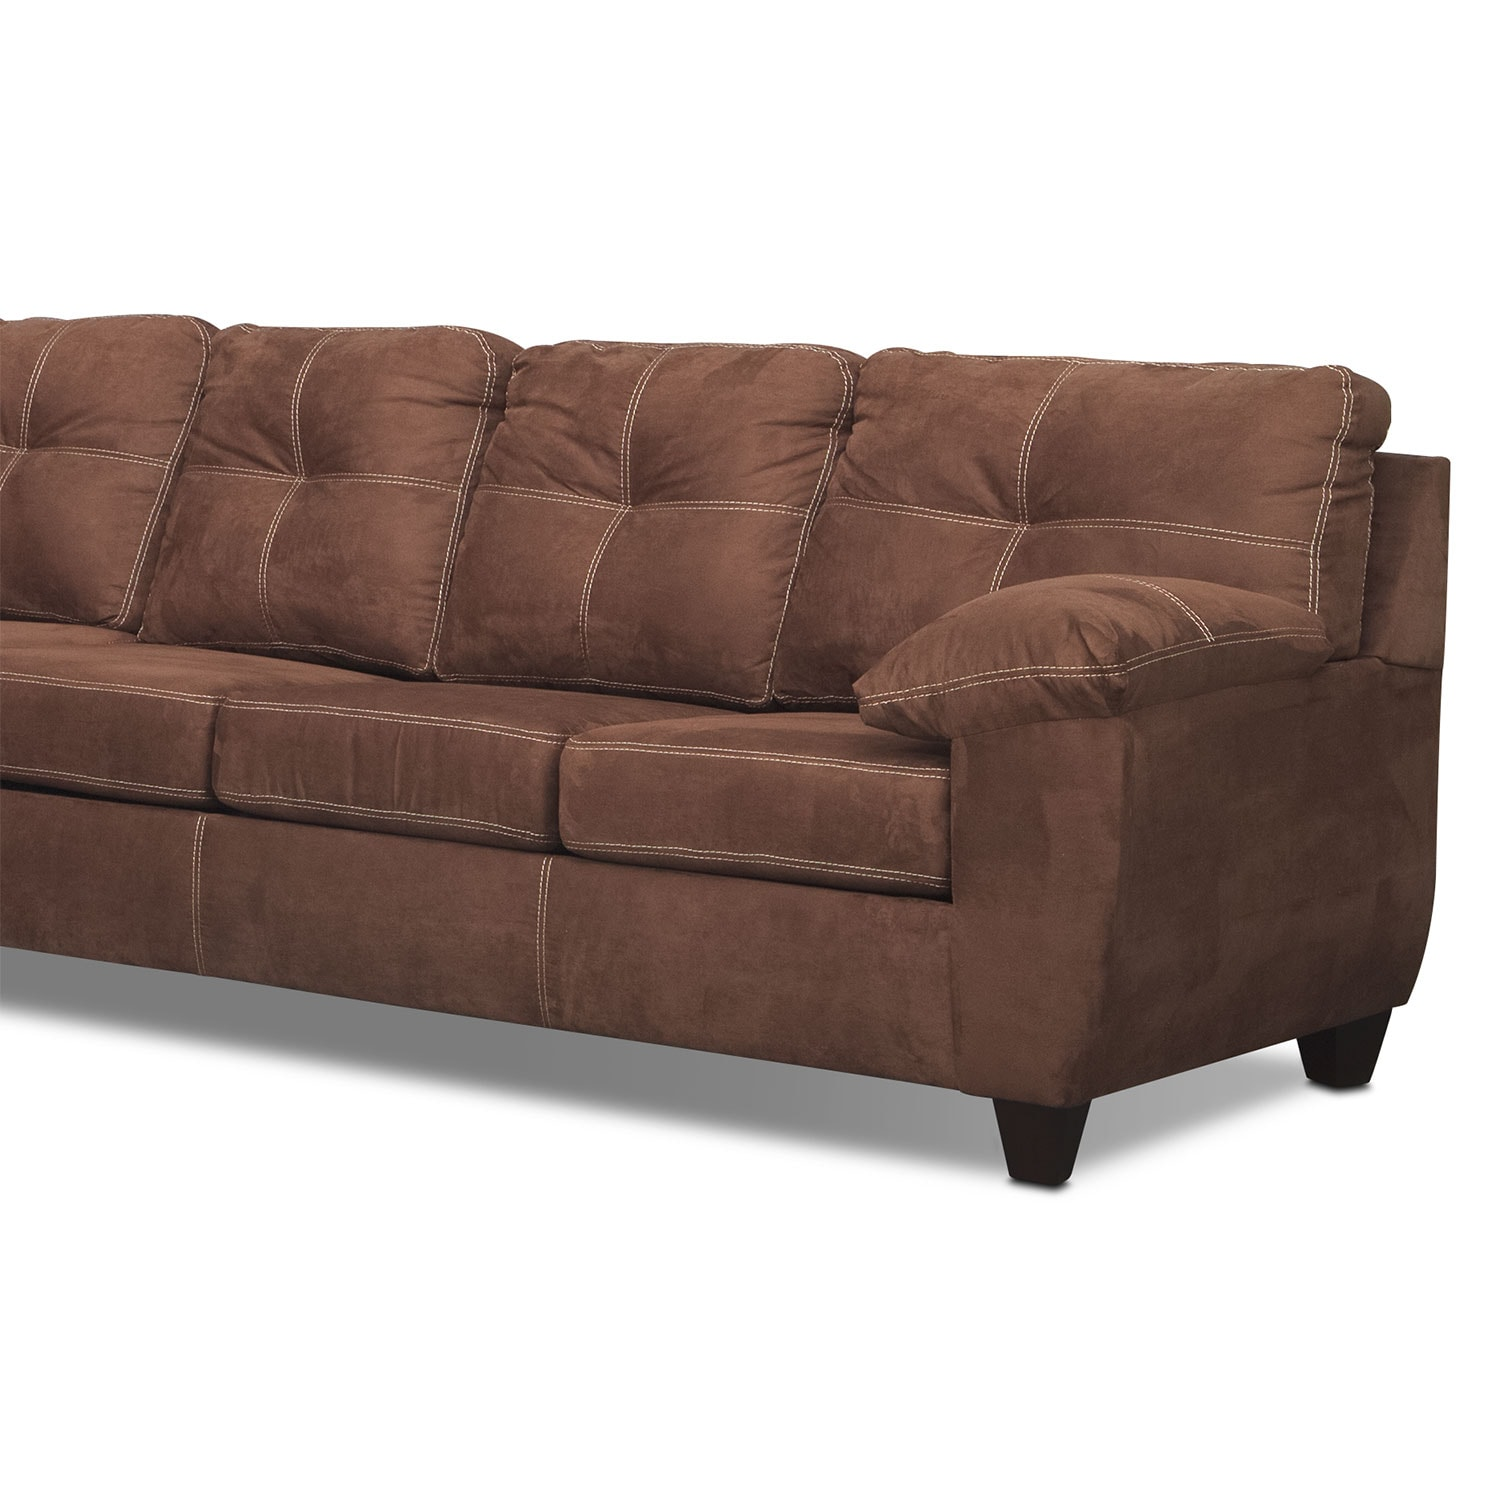 Ricardo 2 piece memory foam sleeper sectional with left for American signature furniture commercial chaise